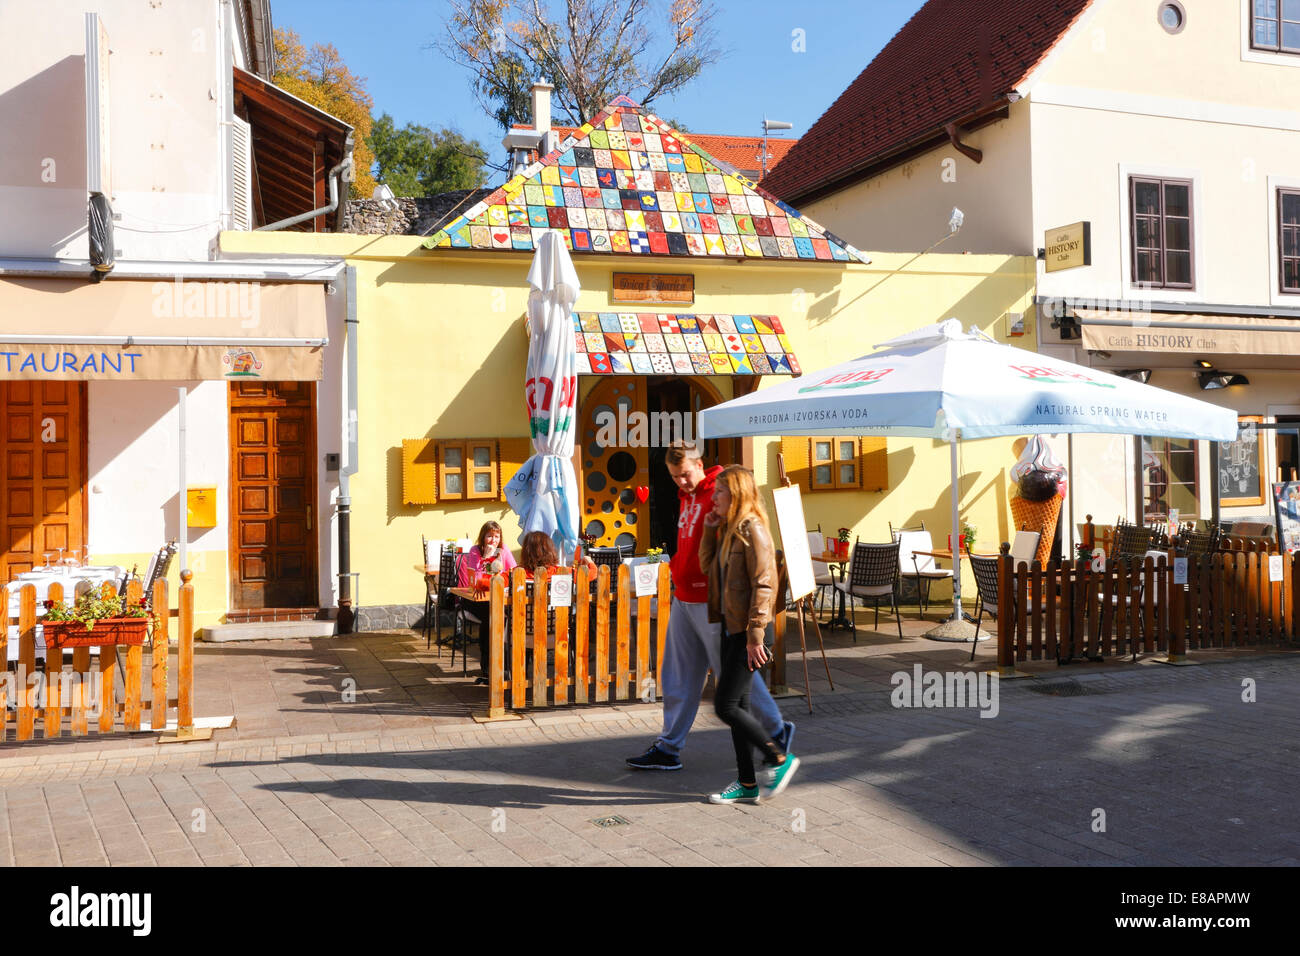 Sketch Restaurant High Resolution Stock Photography And Images Alamy